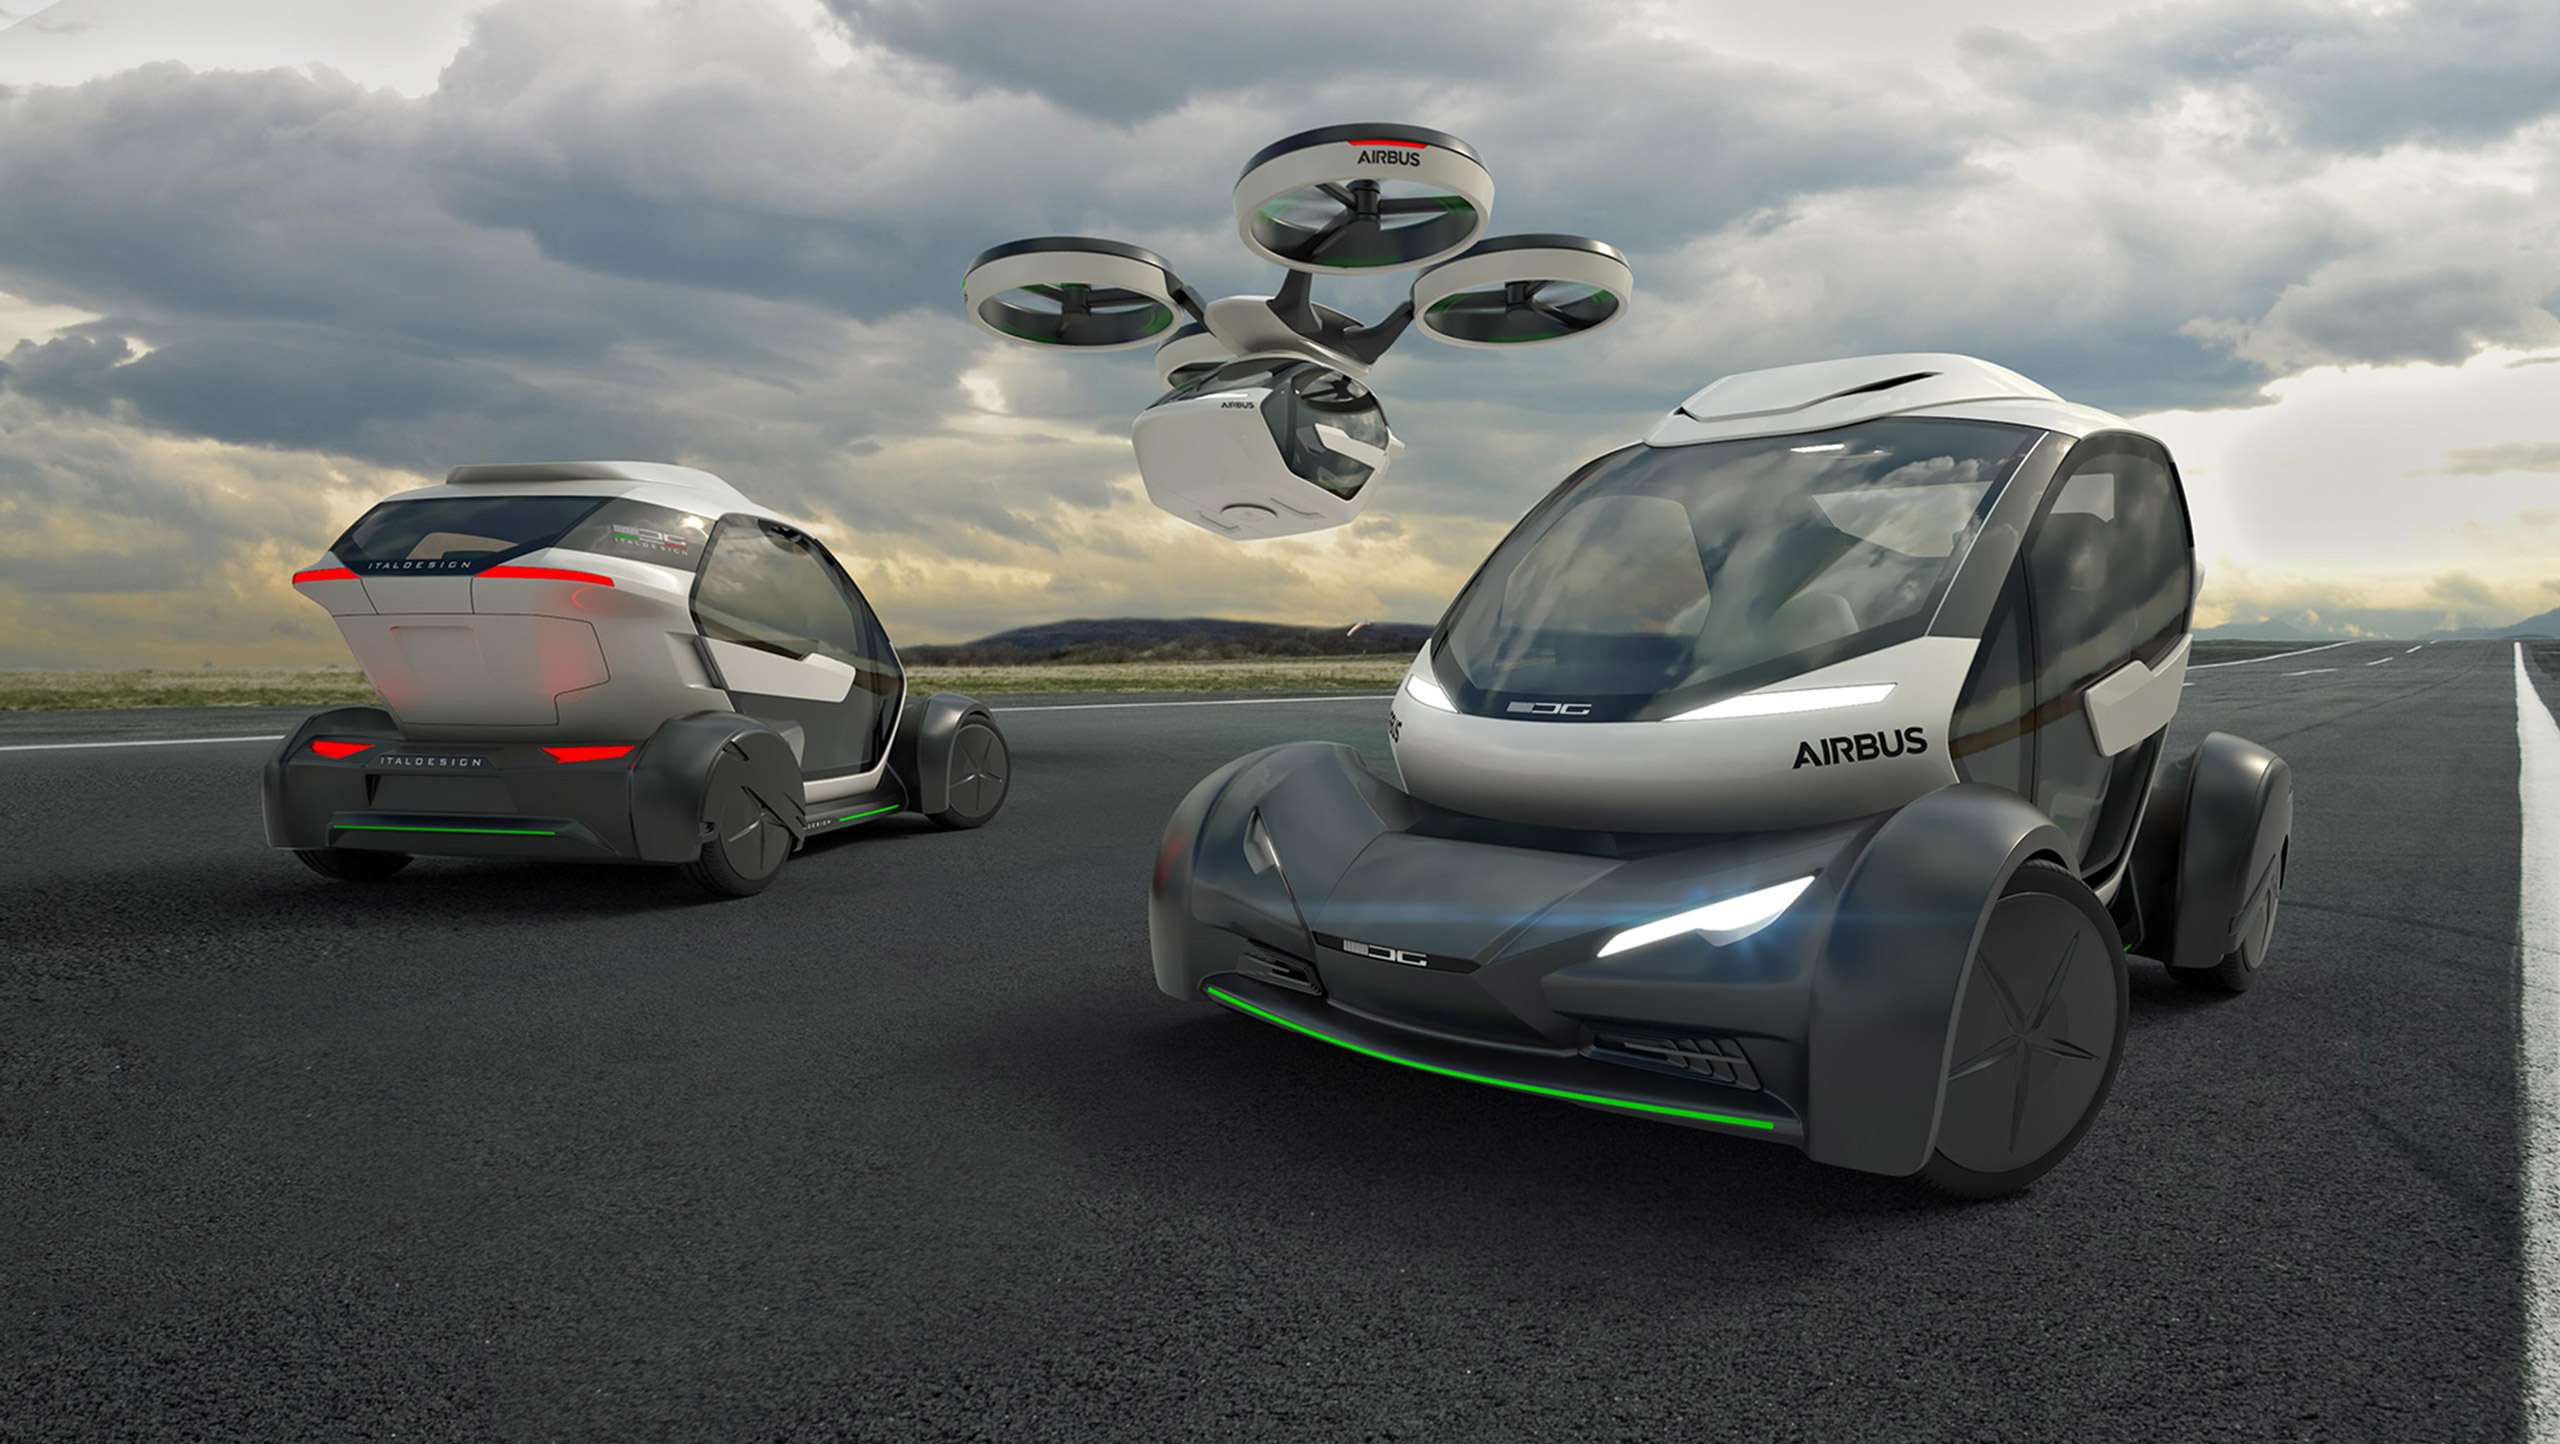 Toyota-backed flying car is slated to light the 2020 Olympic flame